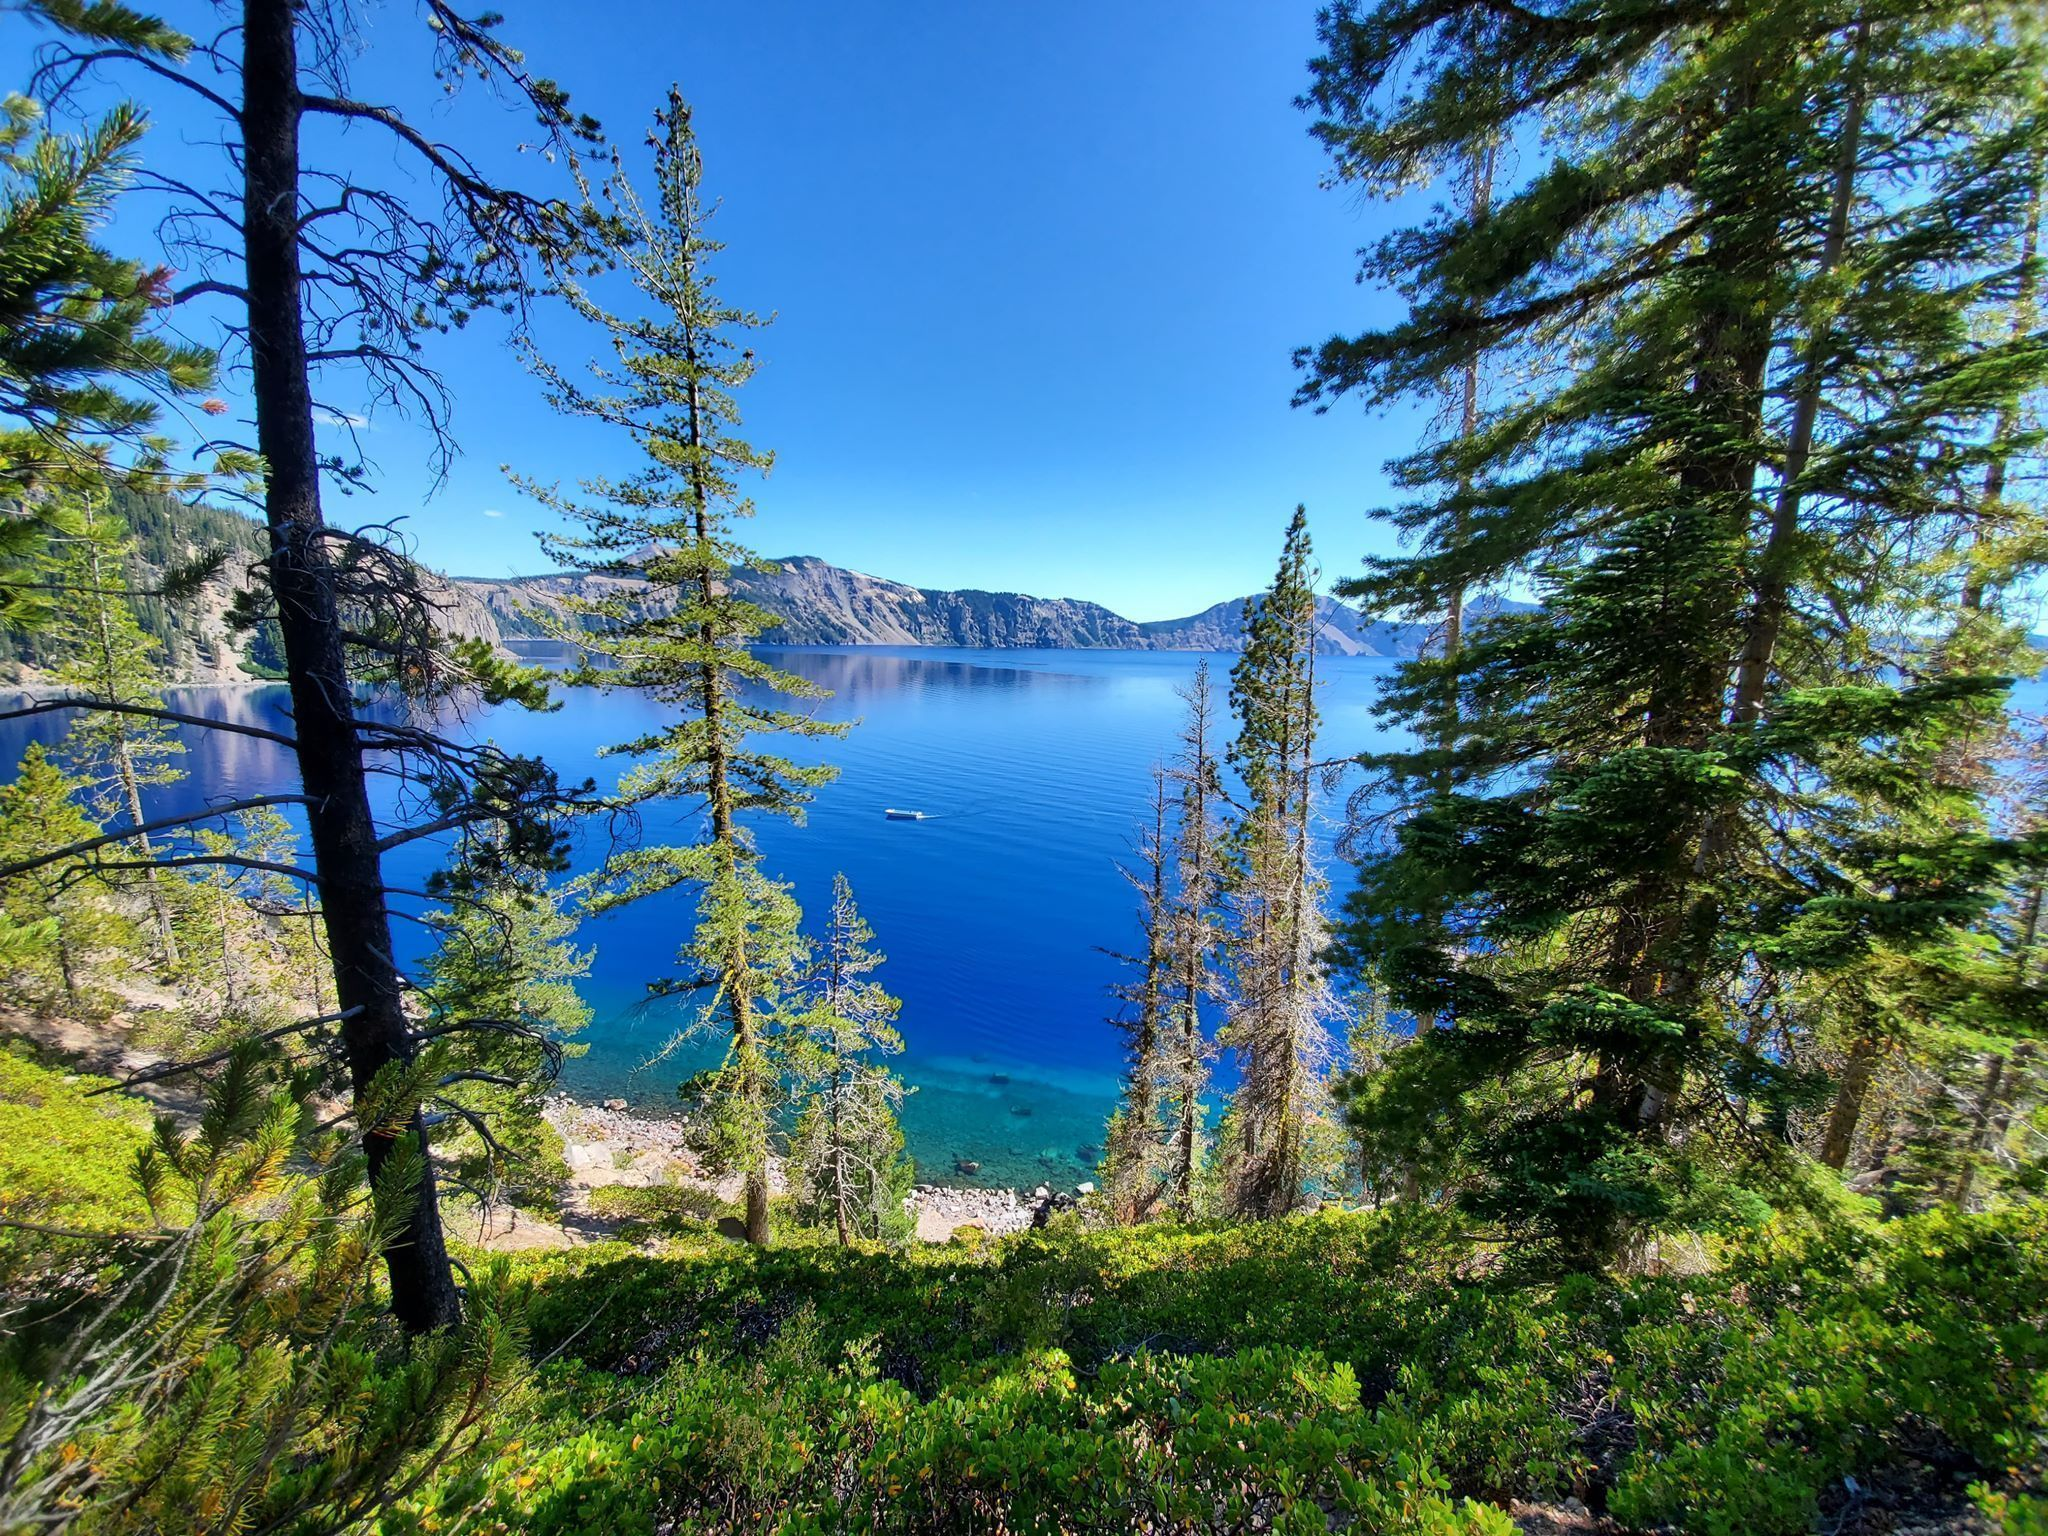 Crater Lake, Oregon  Aug 2019 2048 x 1536 - Nature/Landscape Pictures #craterlakeoregon Crater Lake, Oregon  Aug 2019 2048 x 1536 - Nature/Landscape Pictures #craterlakeoregon Crater Lake, Oregon  Aug 2019 2048 x 1536 - Nature/Landscape Pictures #craterlakeoregon Crater Lake, Oregon  Aug 2019 2048 x 1536 - Nature/Landscape Pictures #craterlakeoregon Crater Lake, Oregon  Aug 2019 2048 x 1536 - Nature/Landscape Pictures #craterlakeoregon Crater Lake, Oregon  Aug 2019 2048 x 1536 - Nature/Landscape #craterlakeoregon